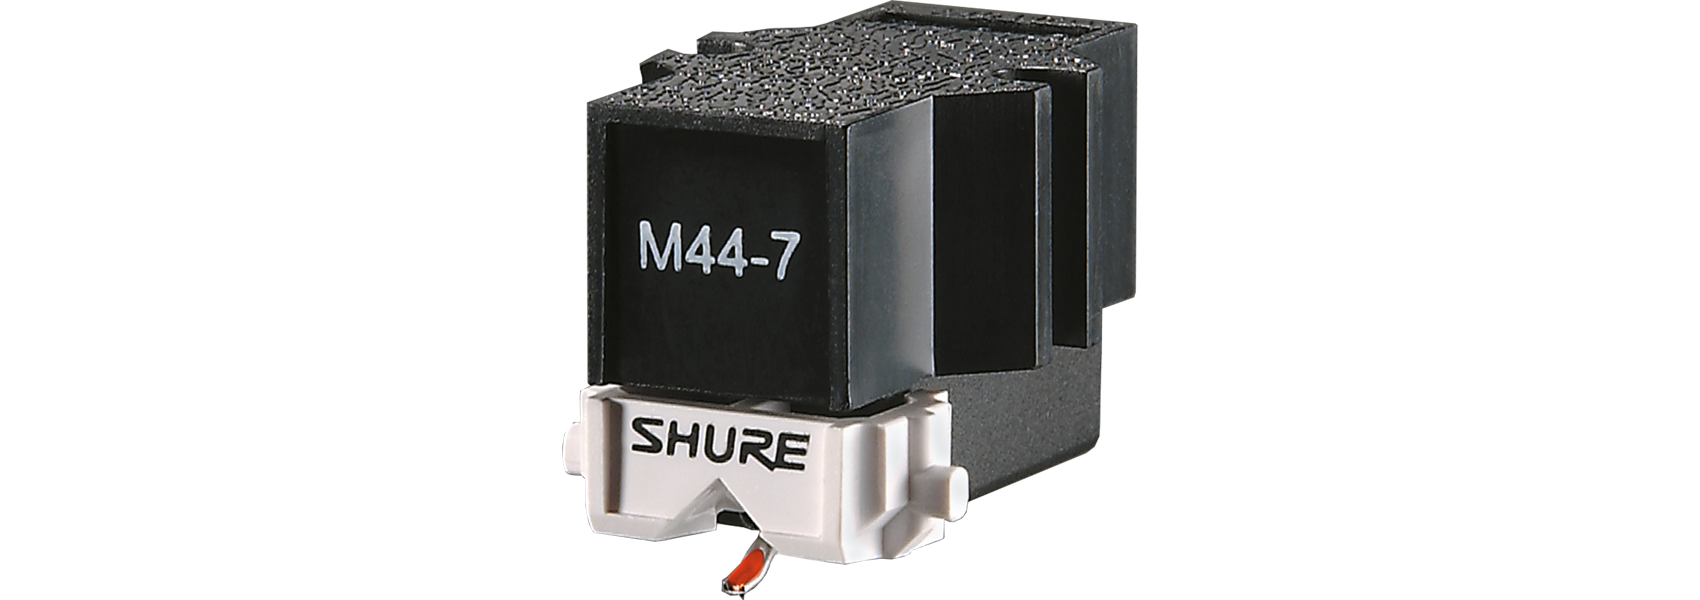 Illustration Shure M44-7 cellule de platine